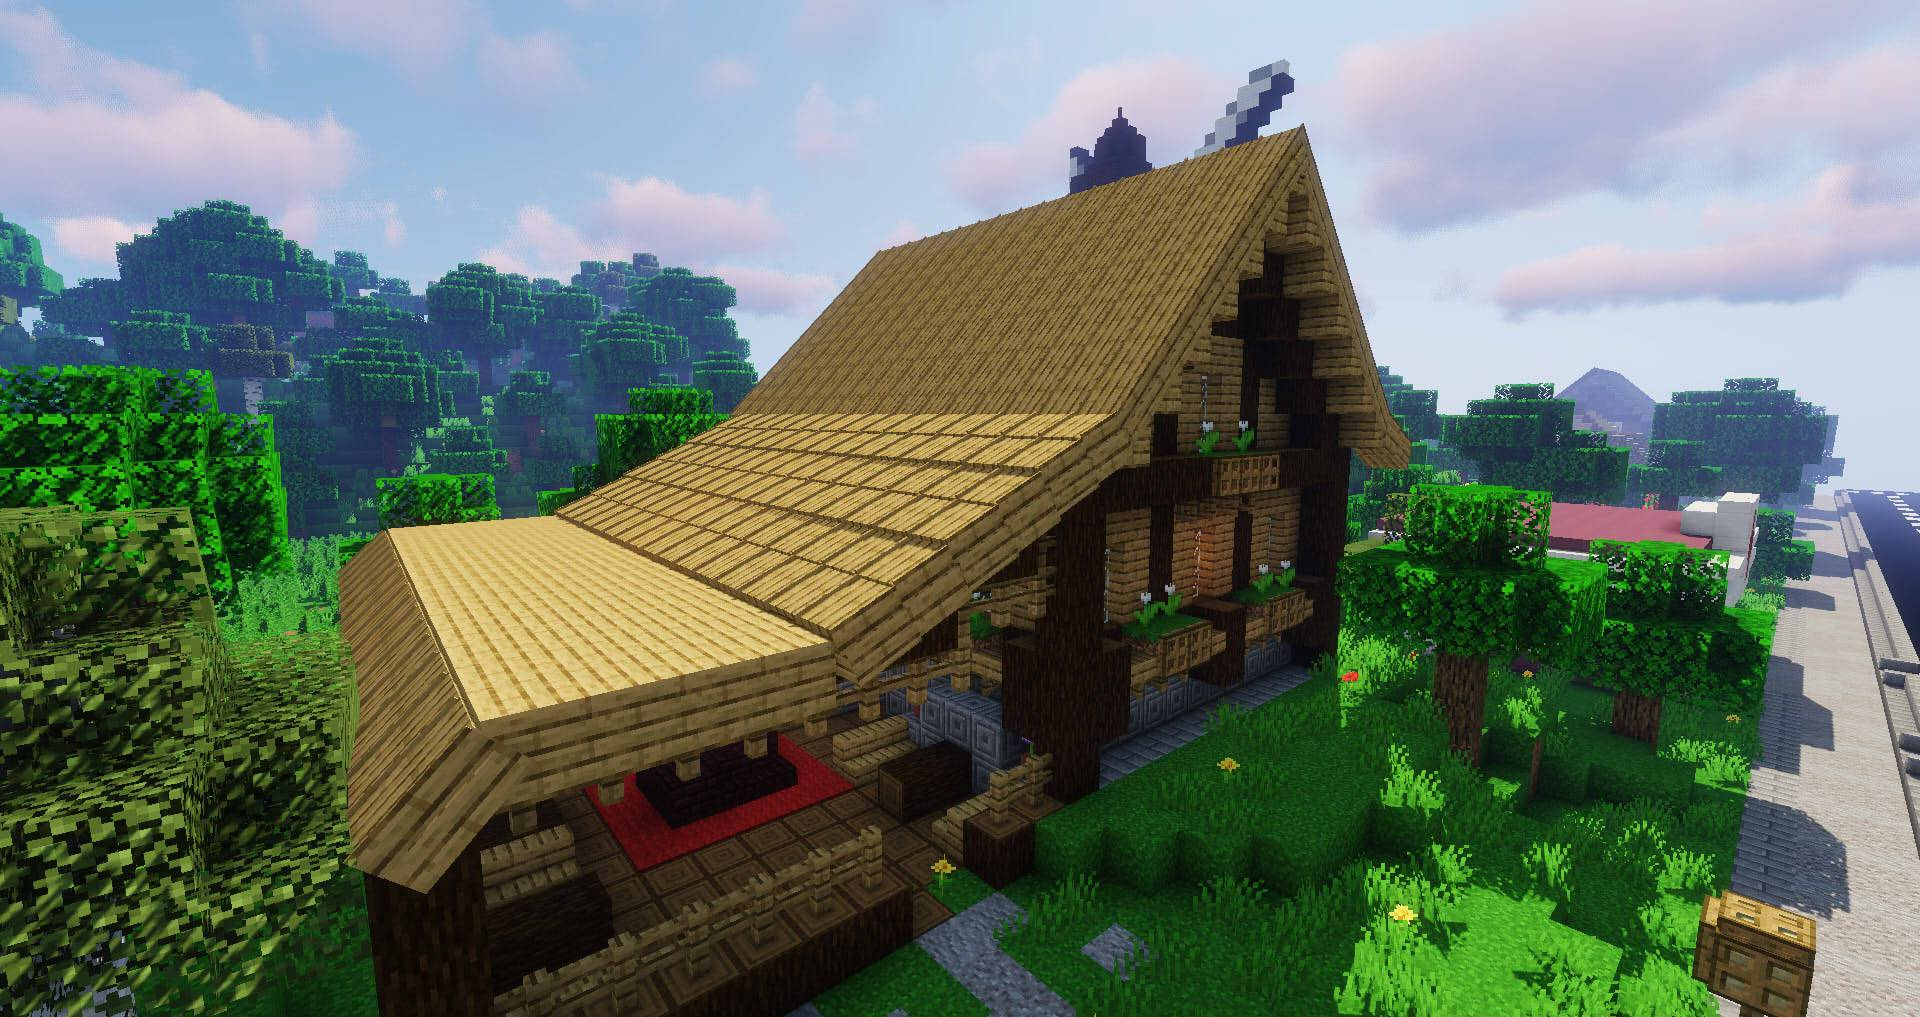 Macaw_s Roofs mod for minecraft 24